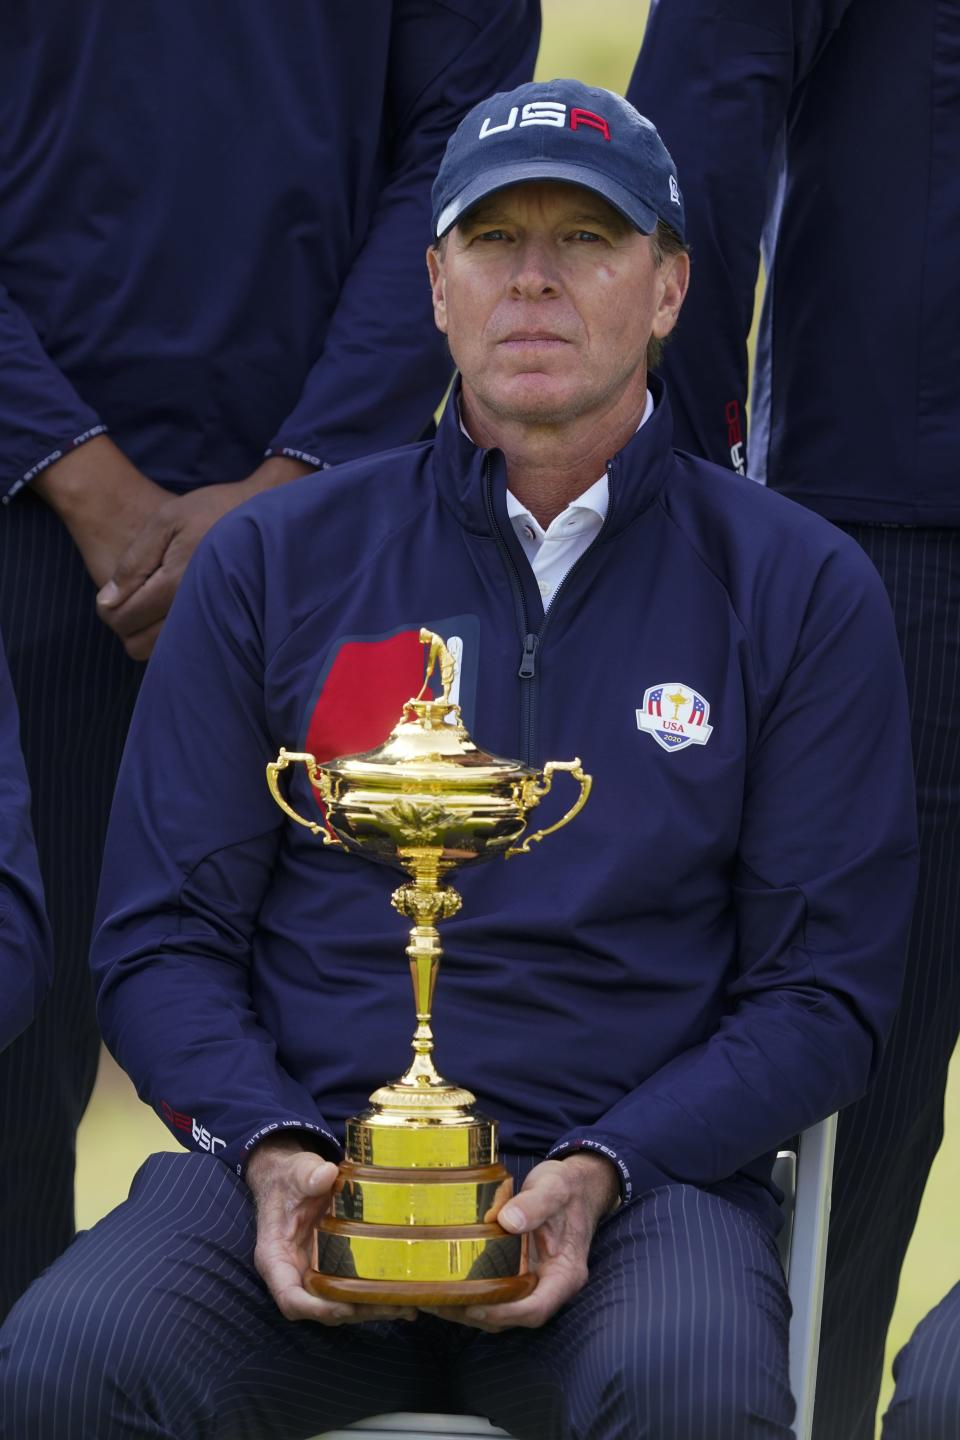 Team USA captain Steve Stricker holds the Ryder Cup as they pose for a picture on the 18th hole during a practice day at the Ryder Cup at the Whistling Straits Golf Course Wednesday, Sept. 22, 2021, in Sheboygan, Wis. (AP Photo/Charlie Neibergall)